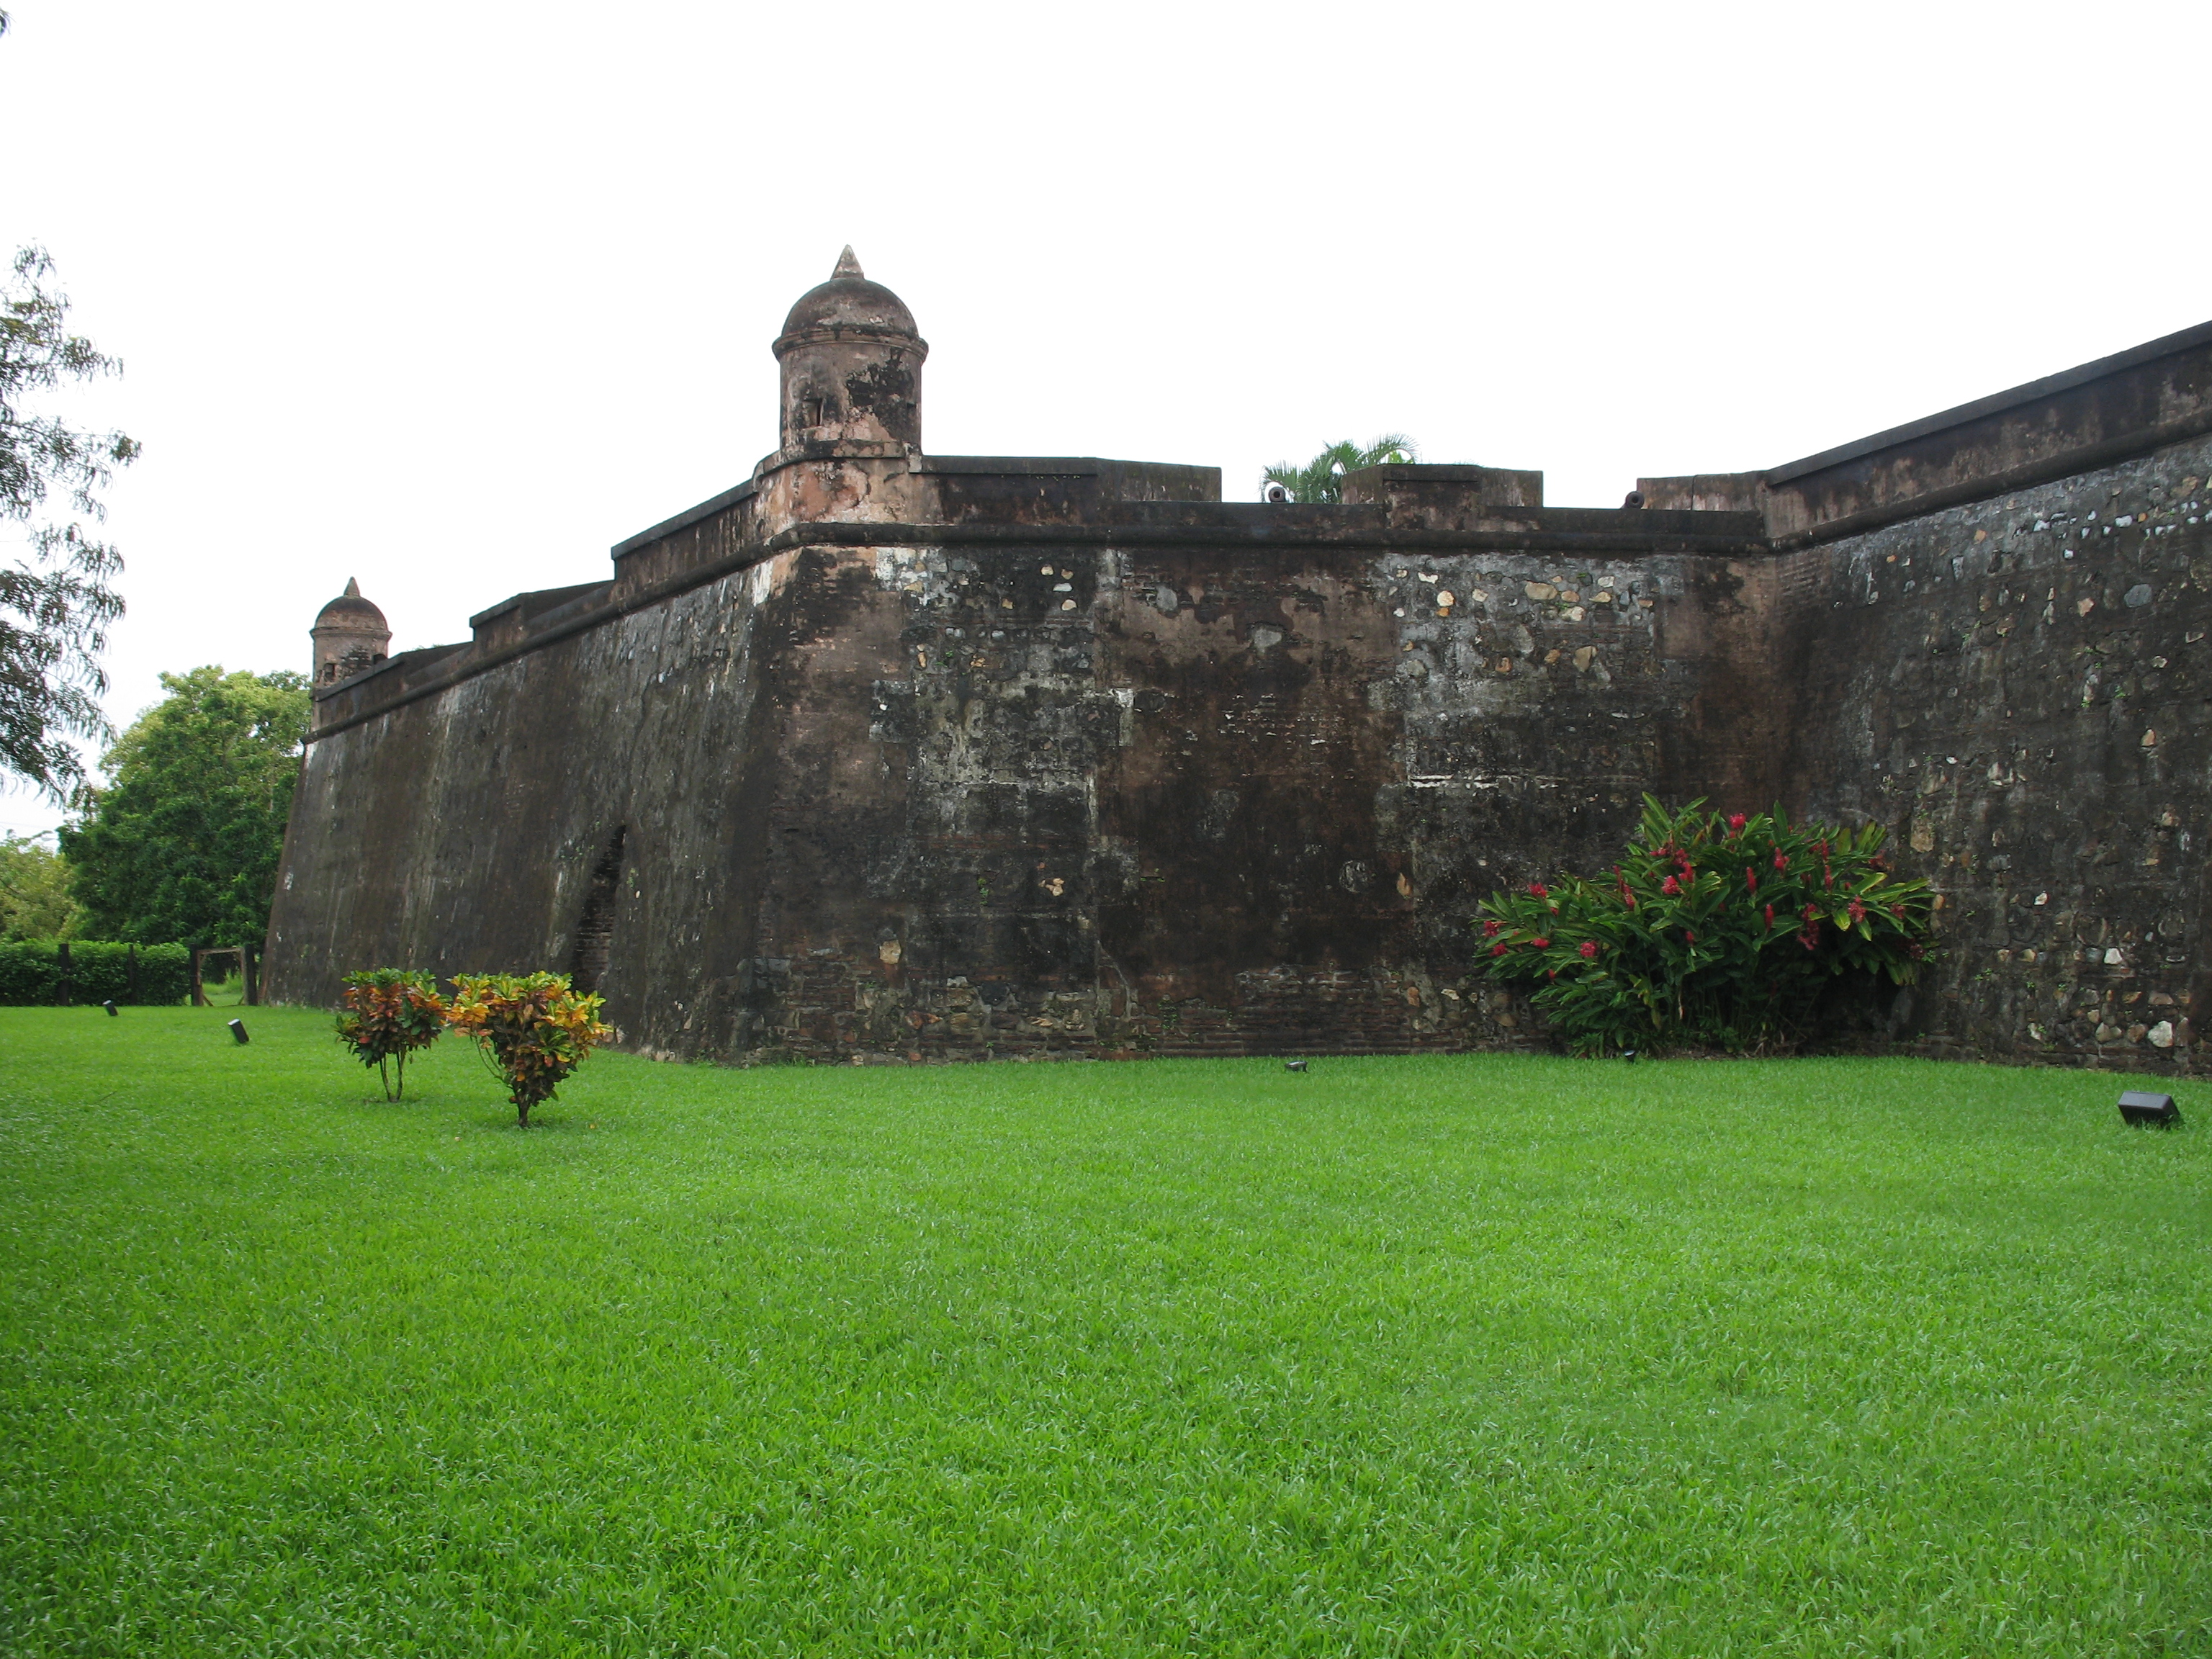 Geography Fun Facts For Kids On Honduras Image Of The Exterior Fuerte De Omoa In